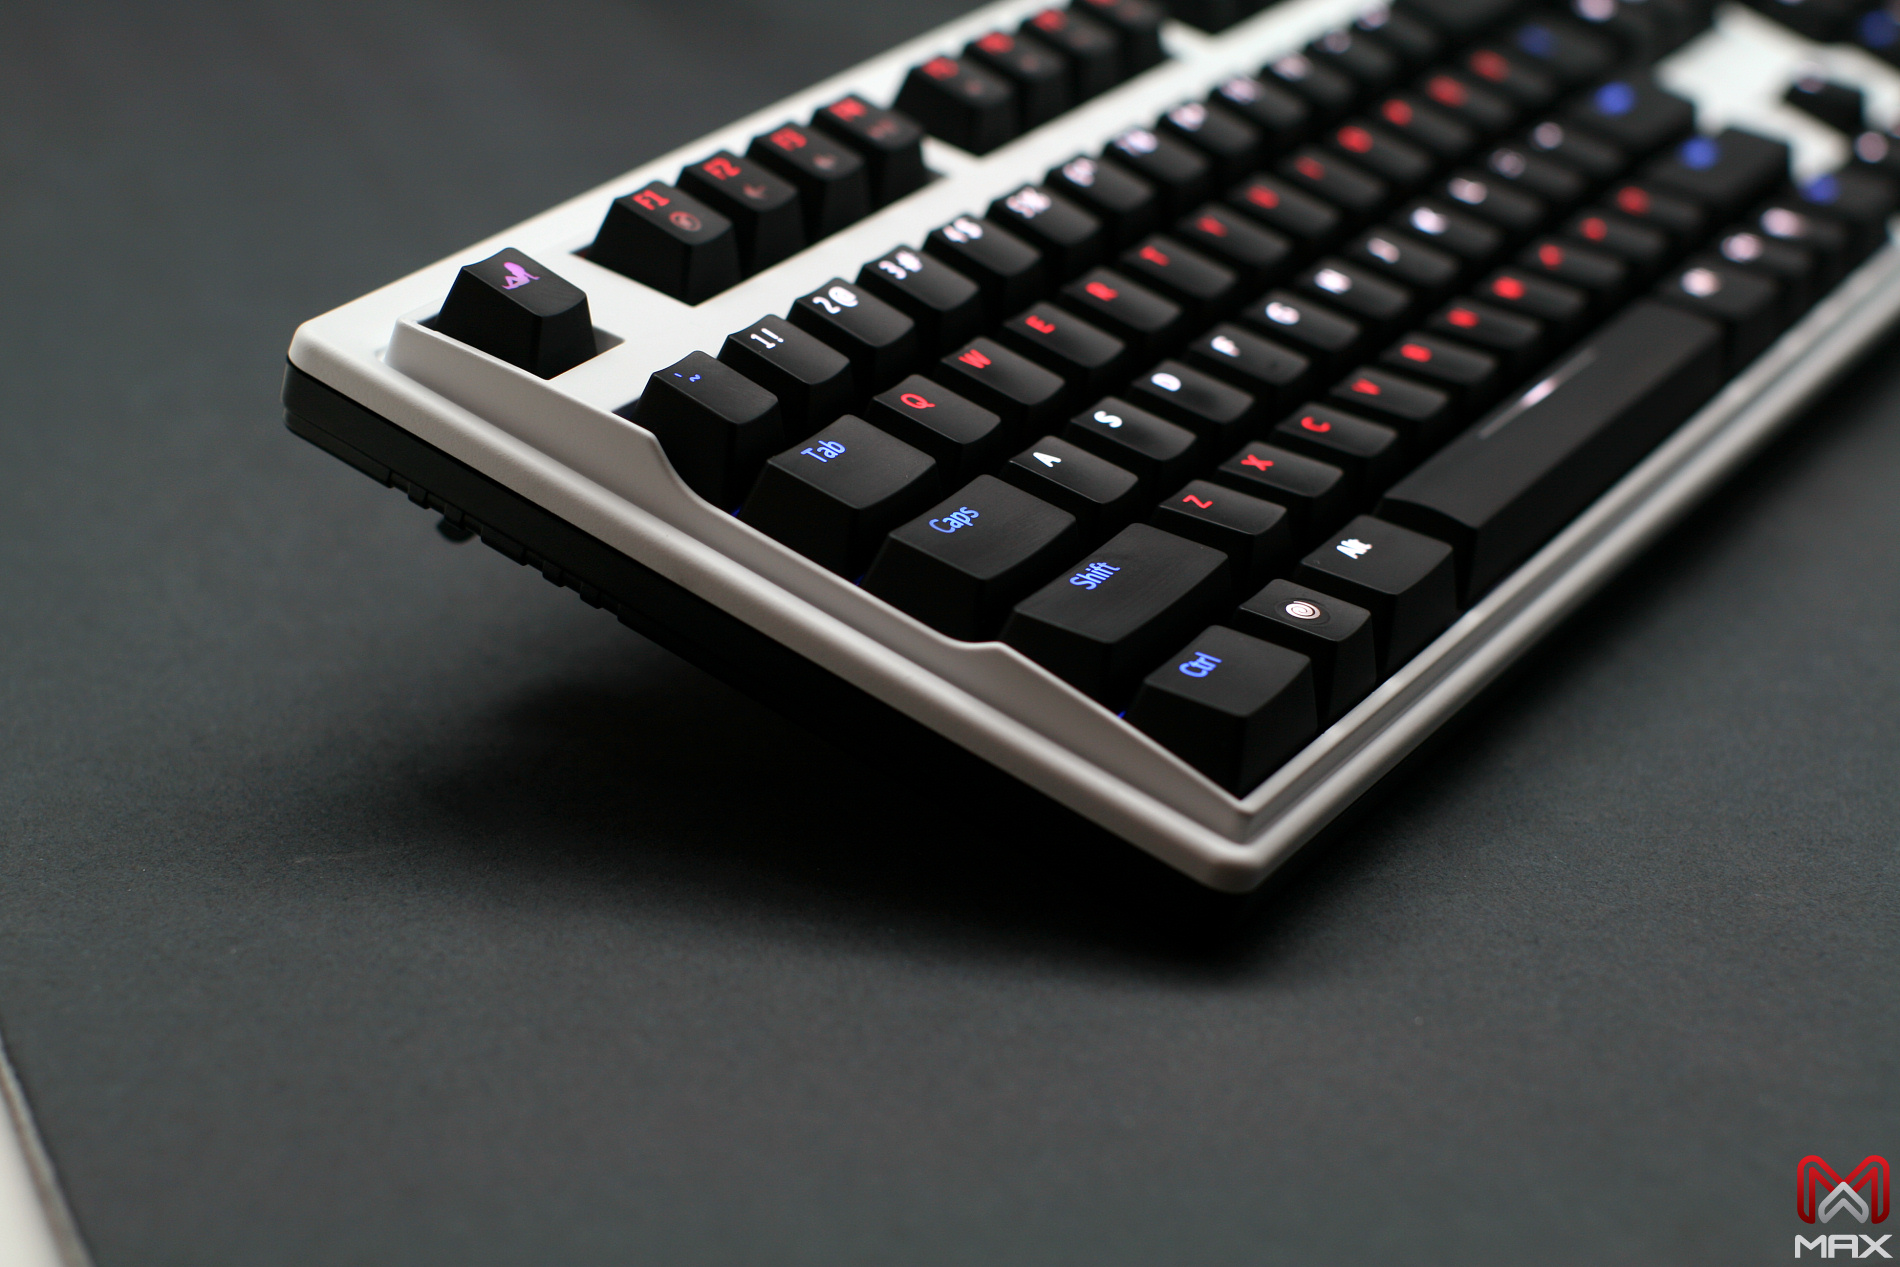 Max Keyboard Custom backlit LED color and cherry MX mechanical switches